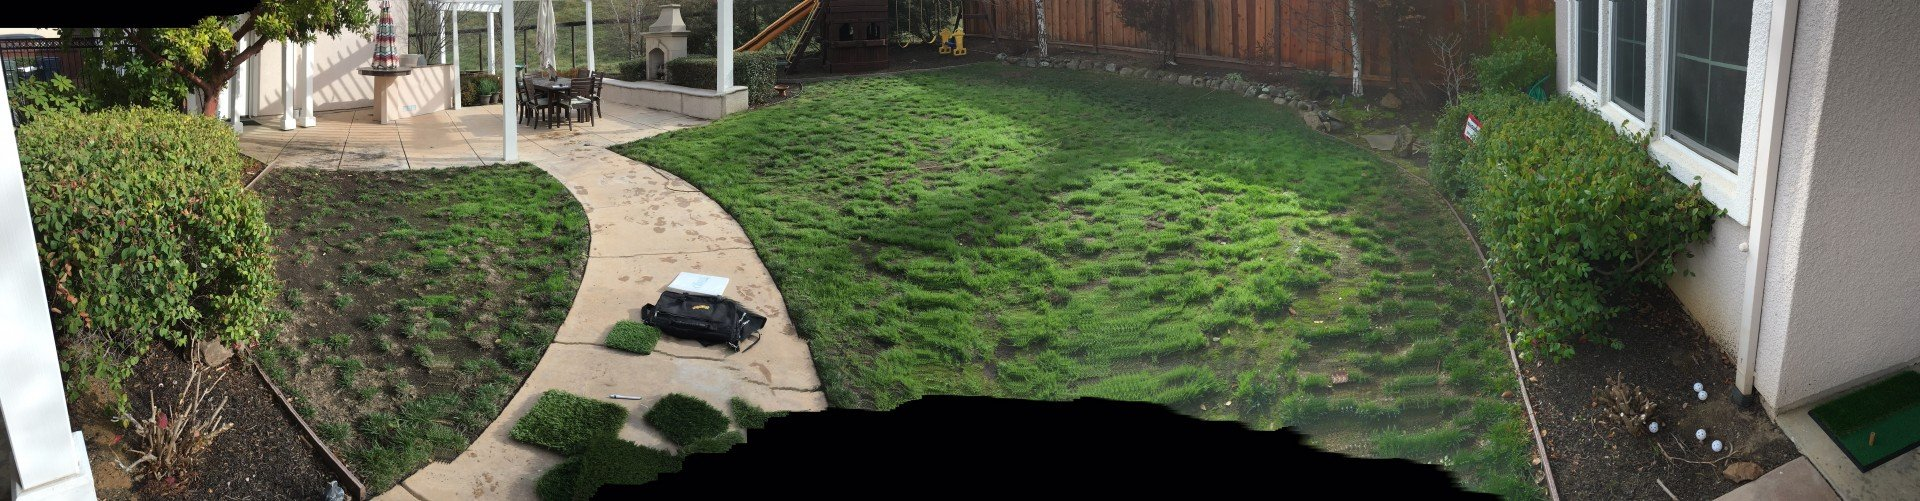 Before And After Turf Installation In Livermore Forever